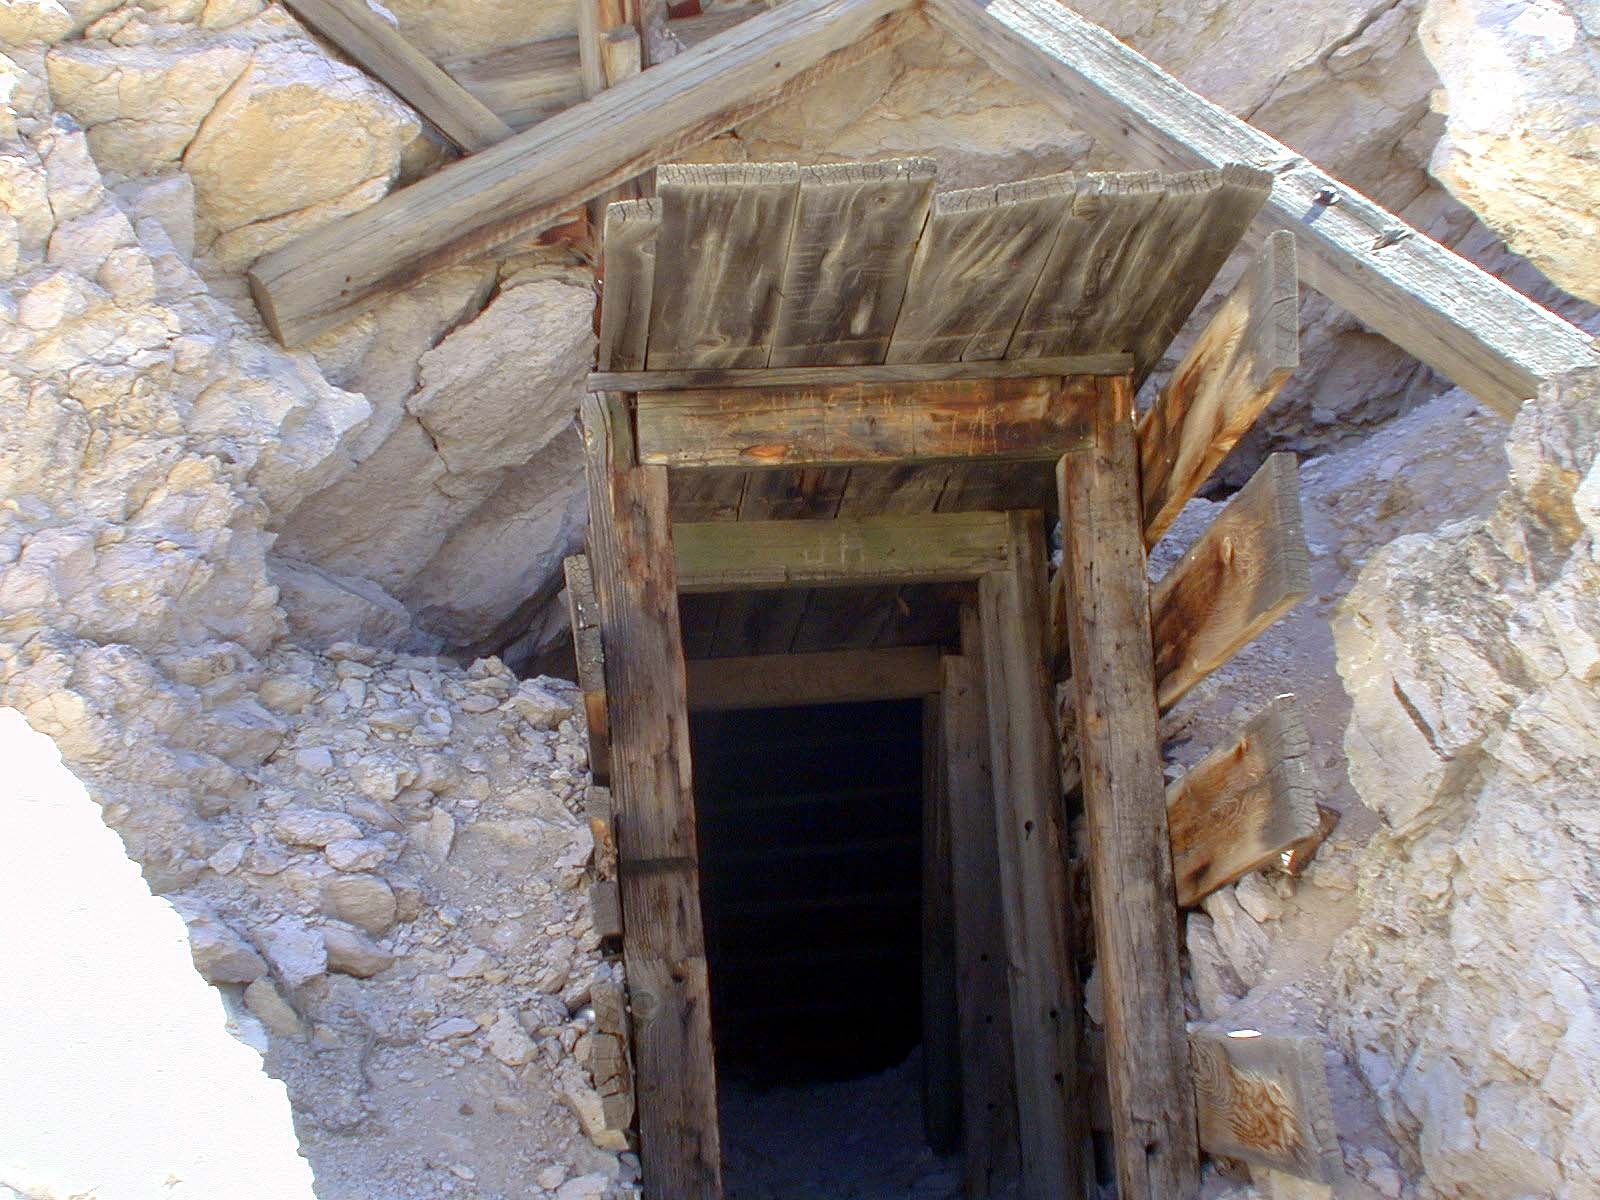 The Rhyolite mine entrance. Notice the classic mine architecture.